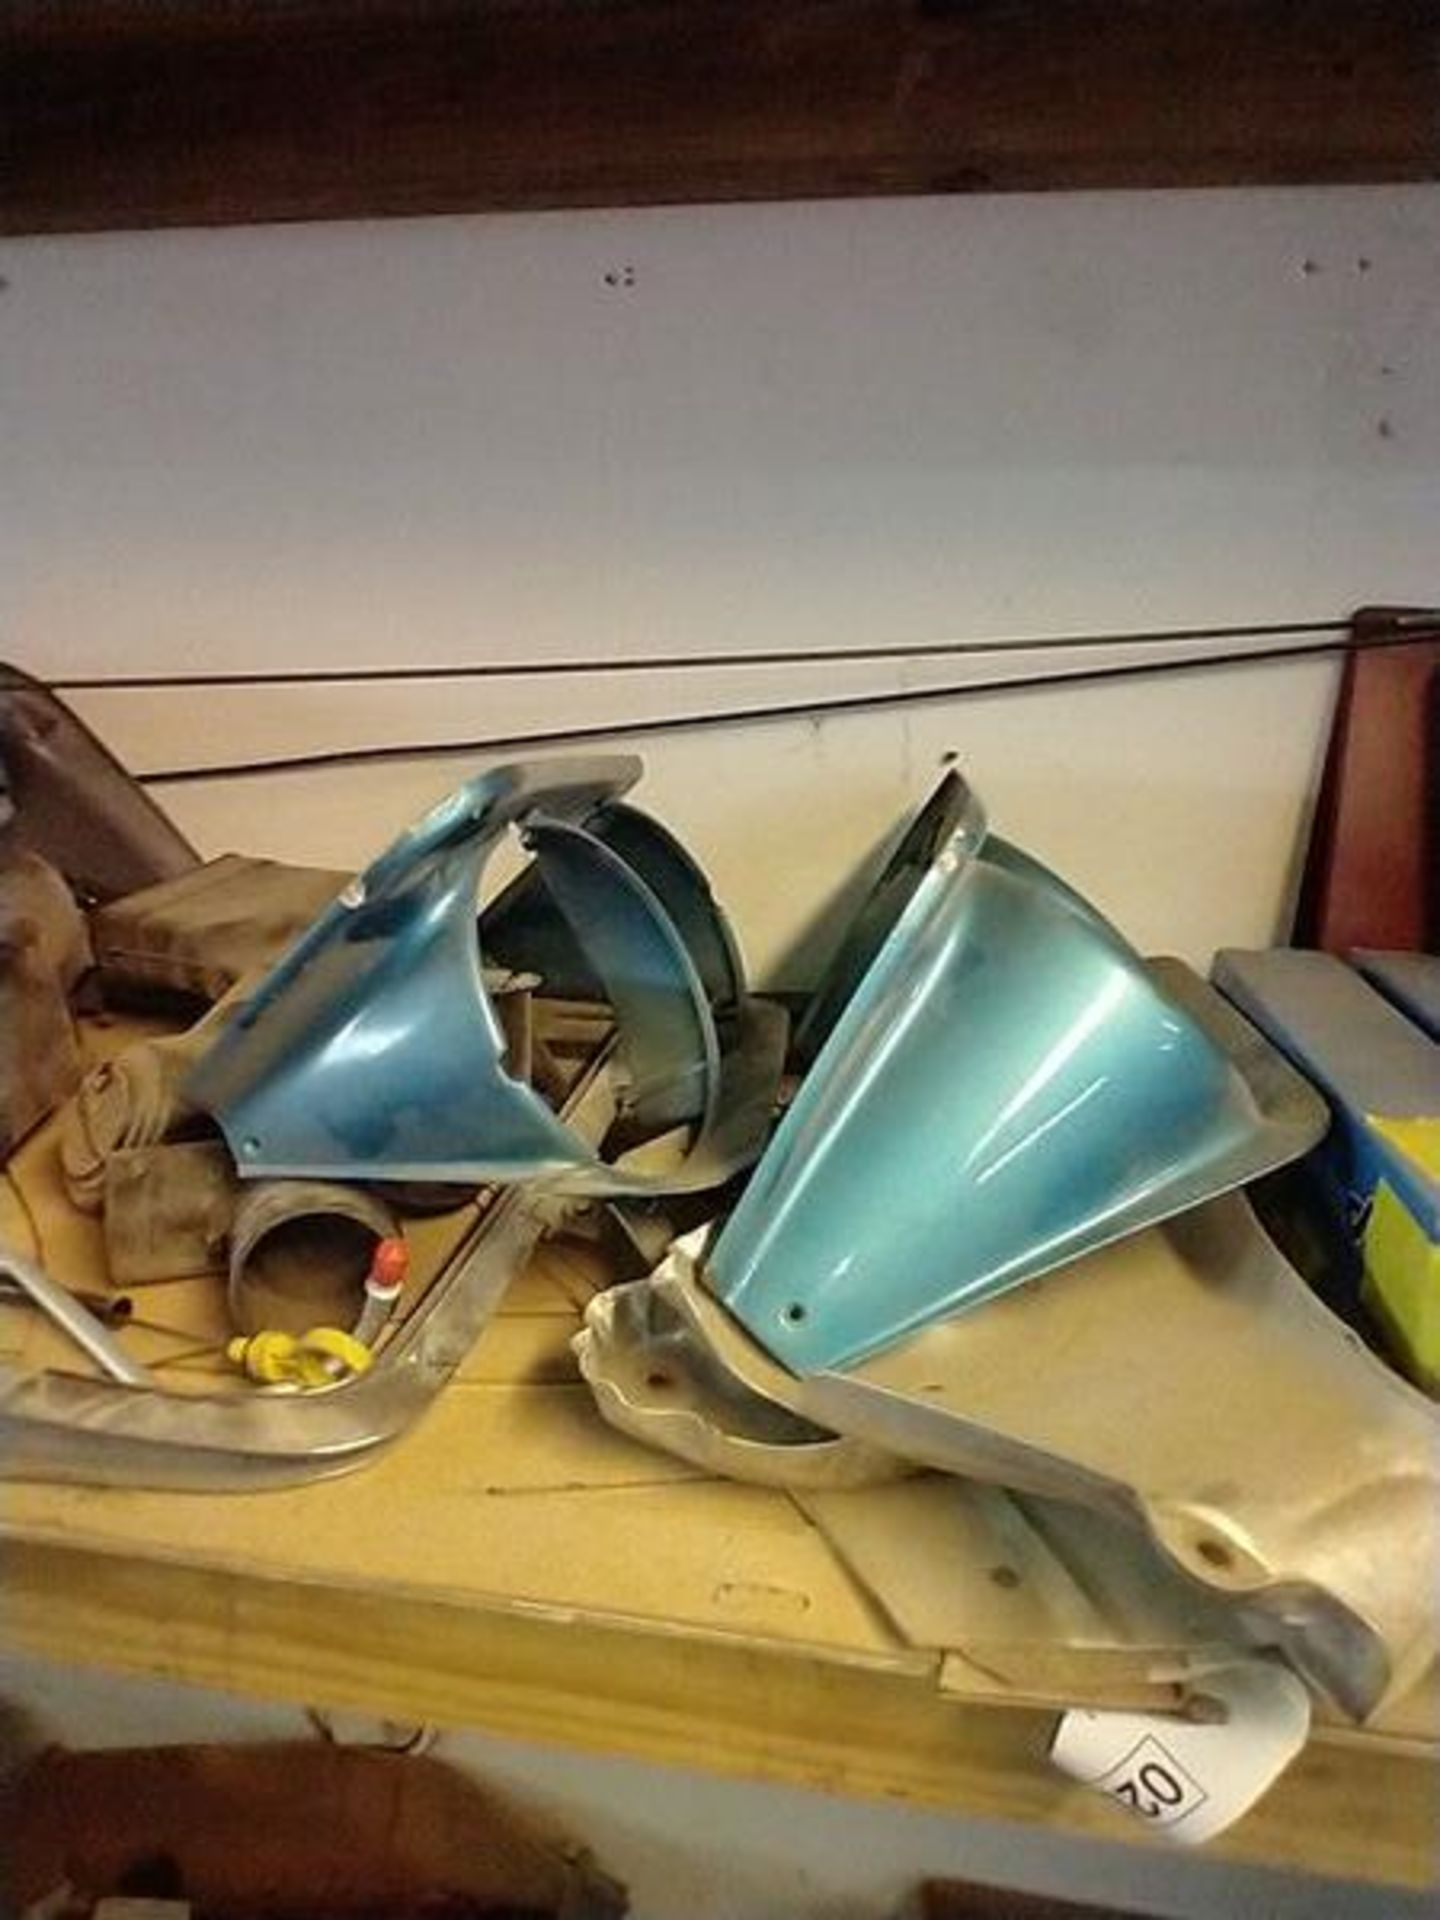 LOT OF ASSORTED CAR PARTS ON 2 SHELVES AND FLOOR - Image 13 of 23